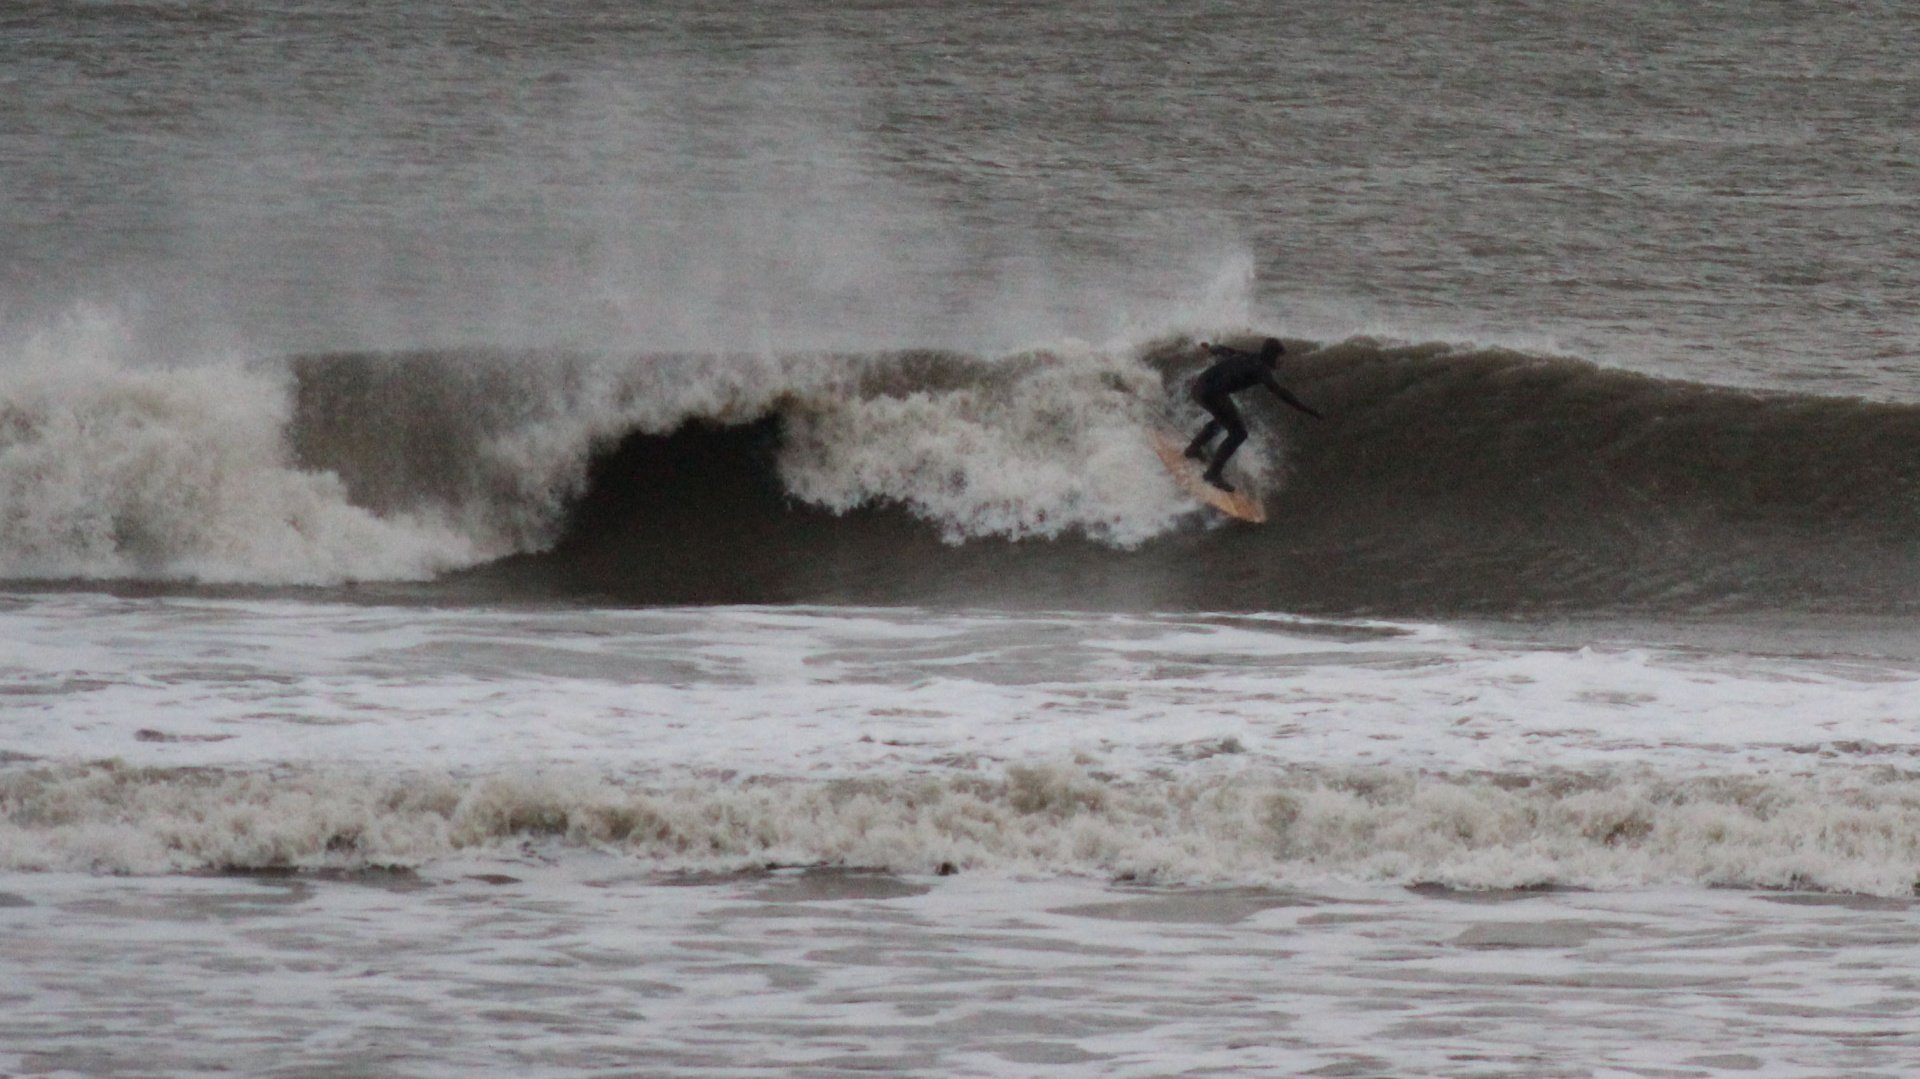 deadheadsurfer's photo of Holyoke